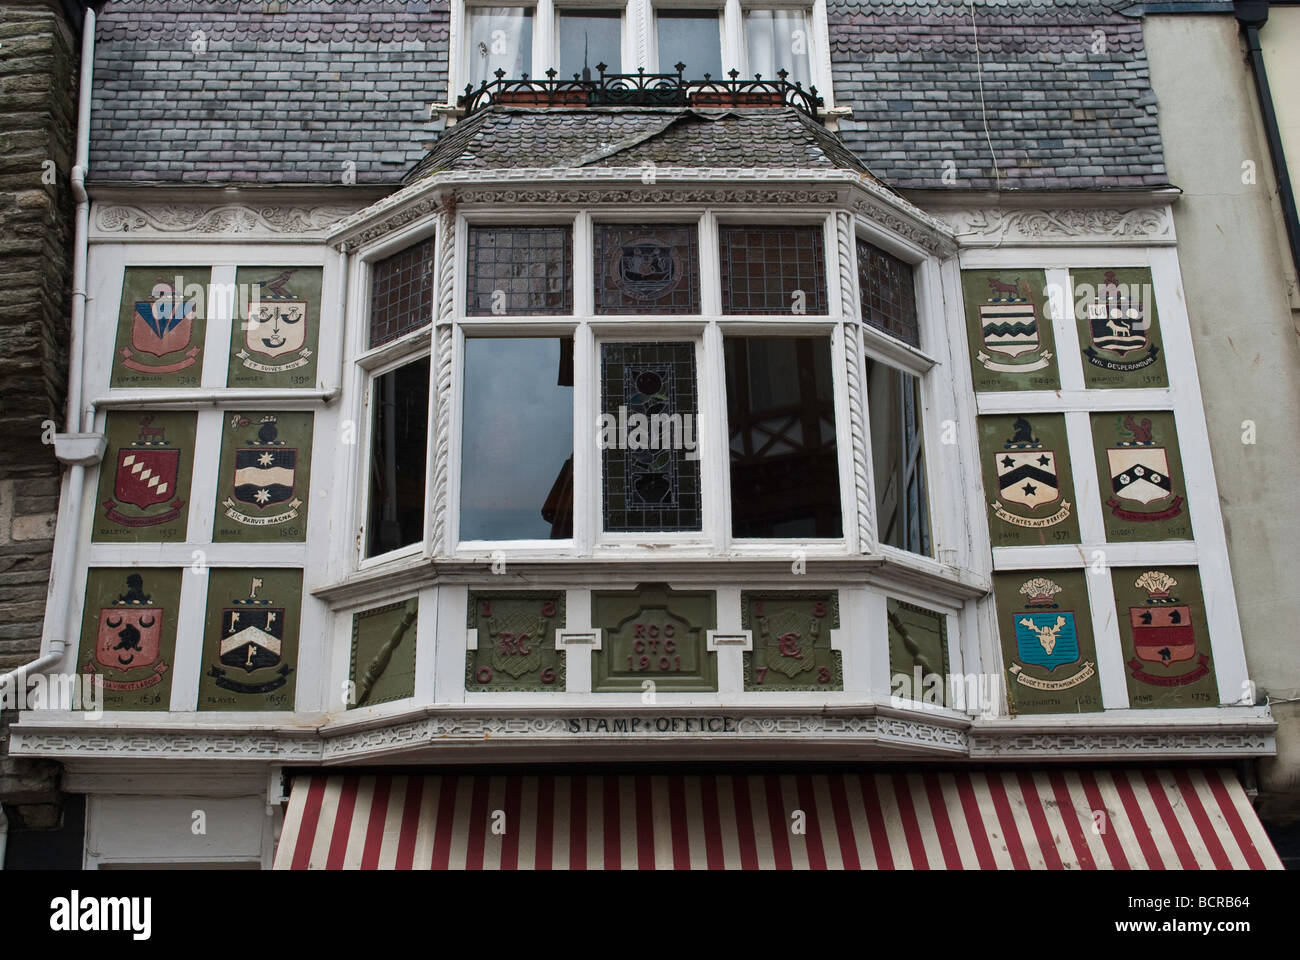 Family crests above a shop front, in Dartmouth, Devon - Stock Image